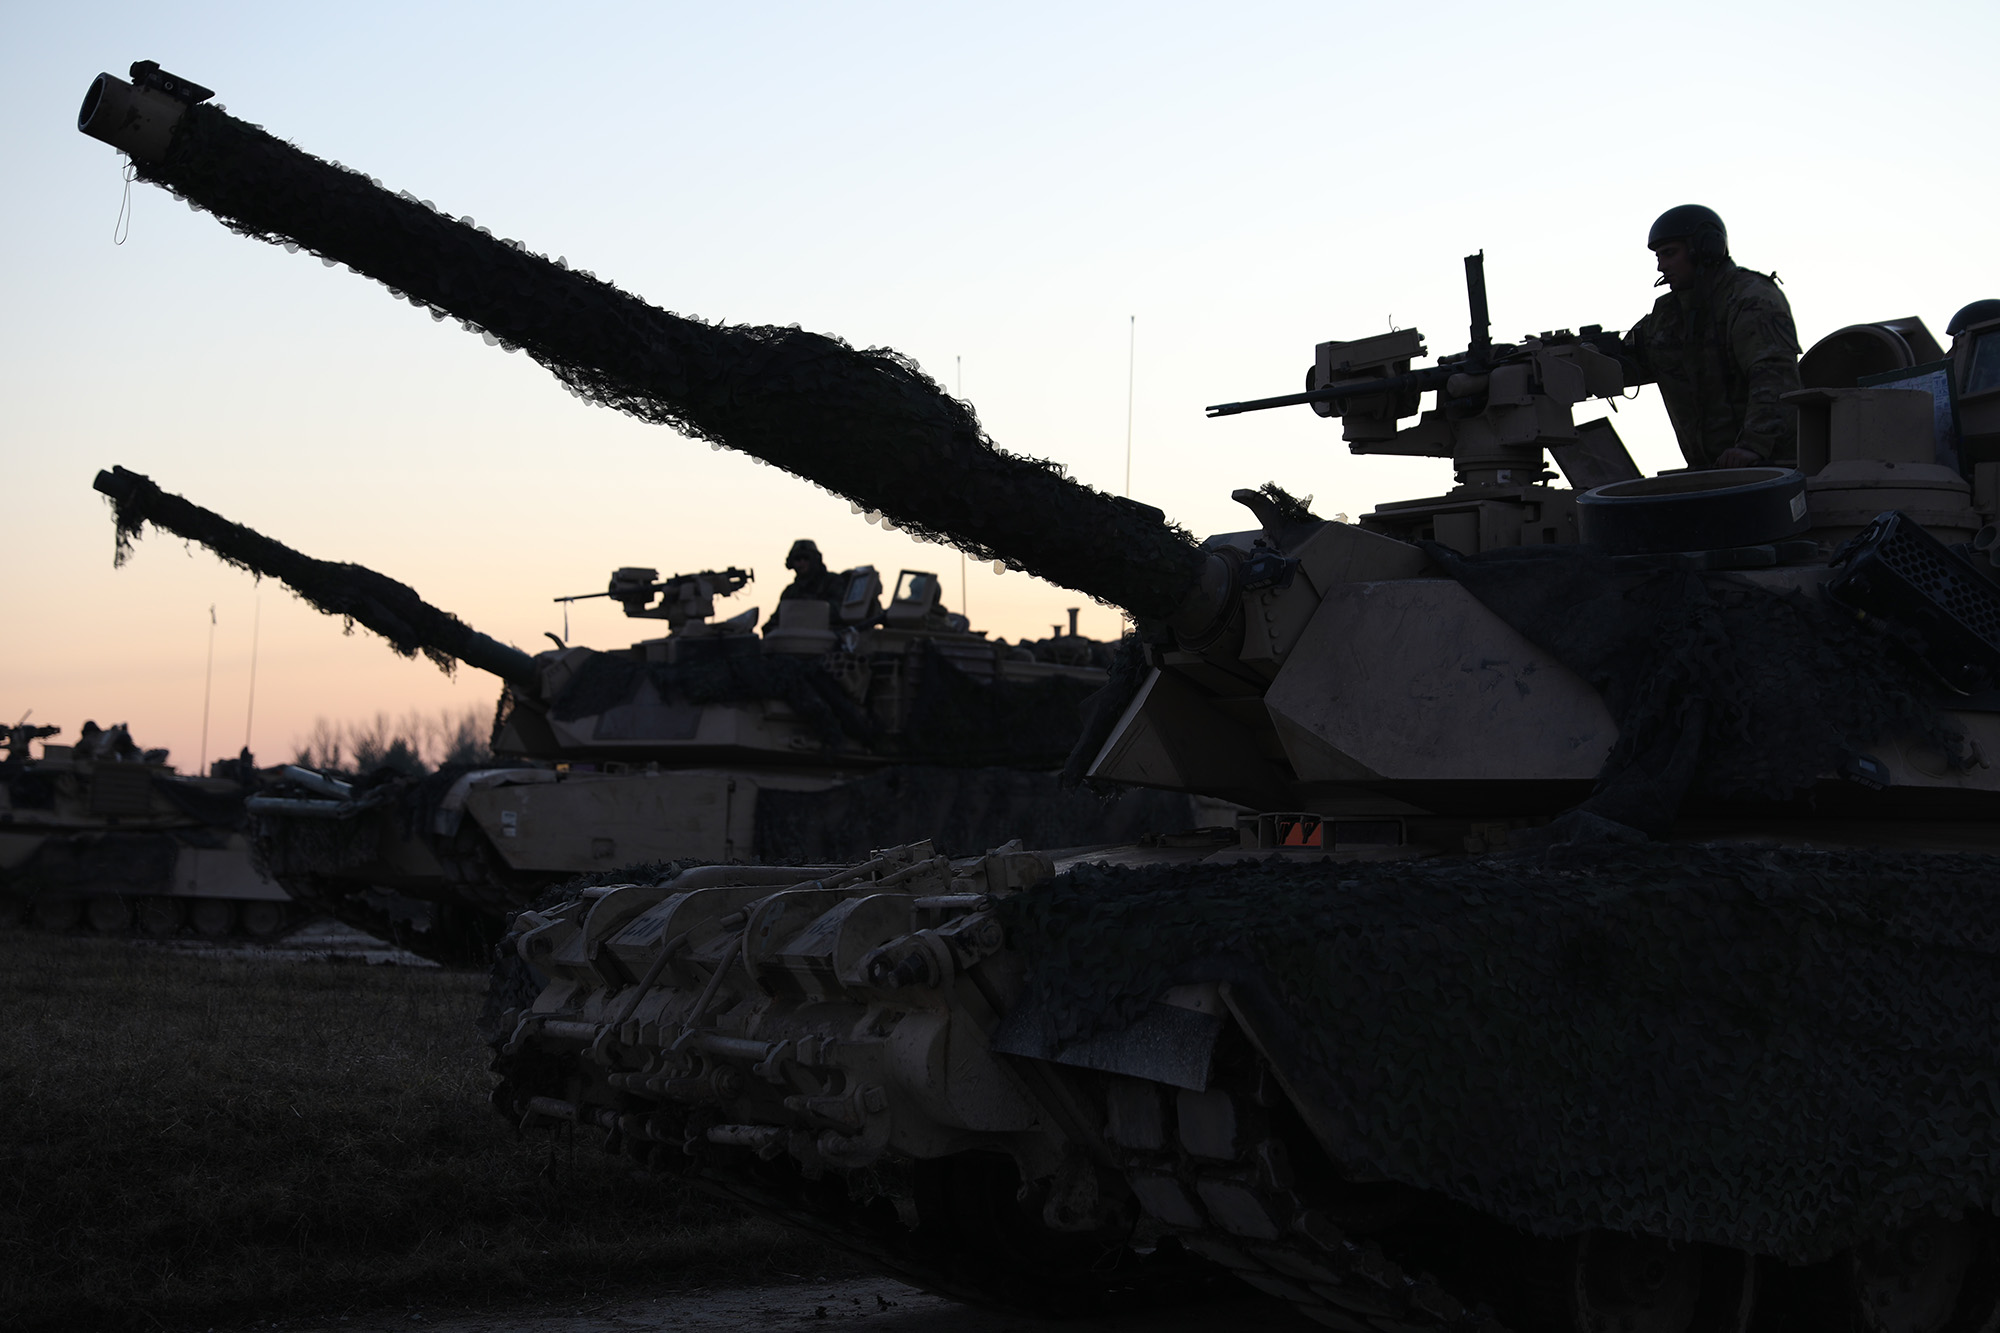 M1A2 Abrams tanks take up strategic positions during a live-fire exercise Jan. 16, 2020, in preparation for Combined Resolve XIII in Grafenwohr, Germany. (Staff Sgt. Gregory Stevens/Army National Guard)